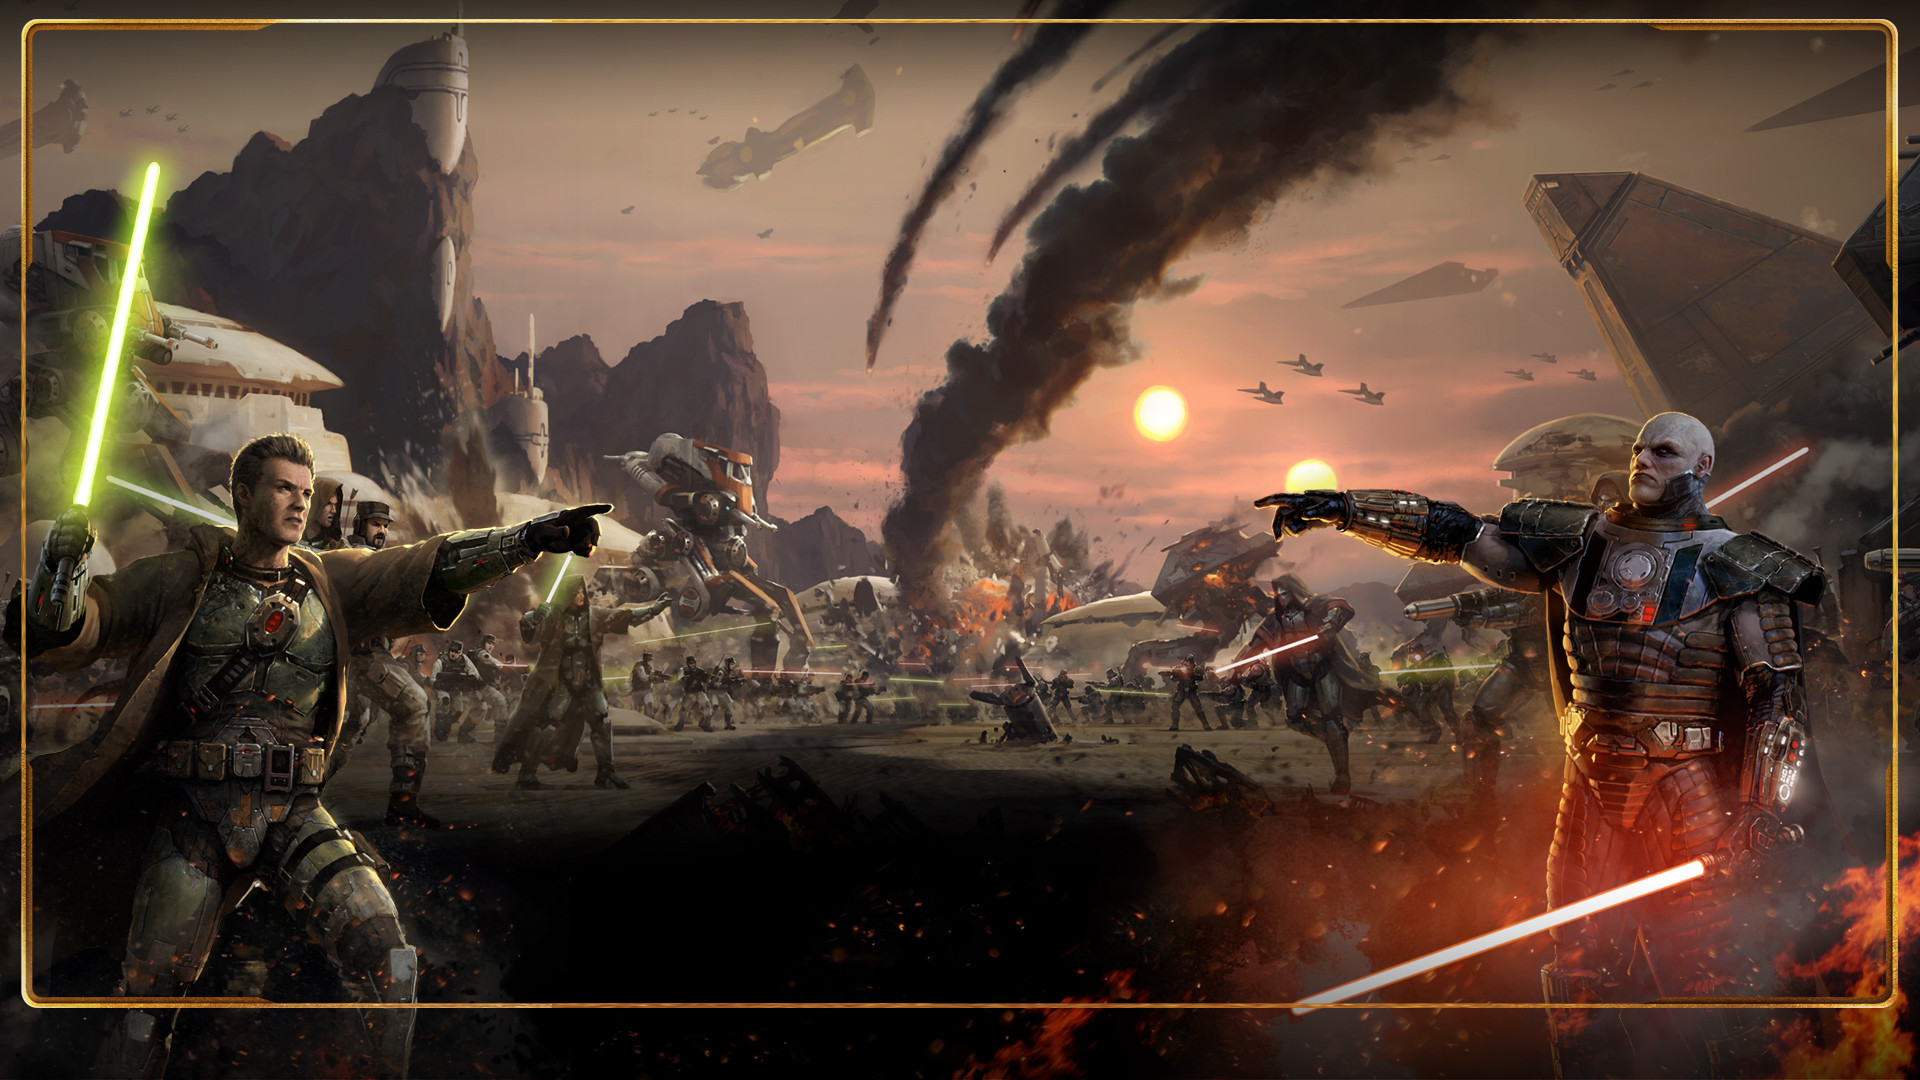 The Old Republic Images Jedi Vs Sith Hd Wallpaper And Star Wars Old Republic Battle 1920x1080 Wallpaper Teahub Io